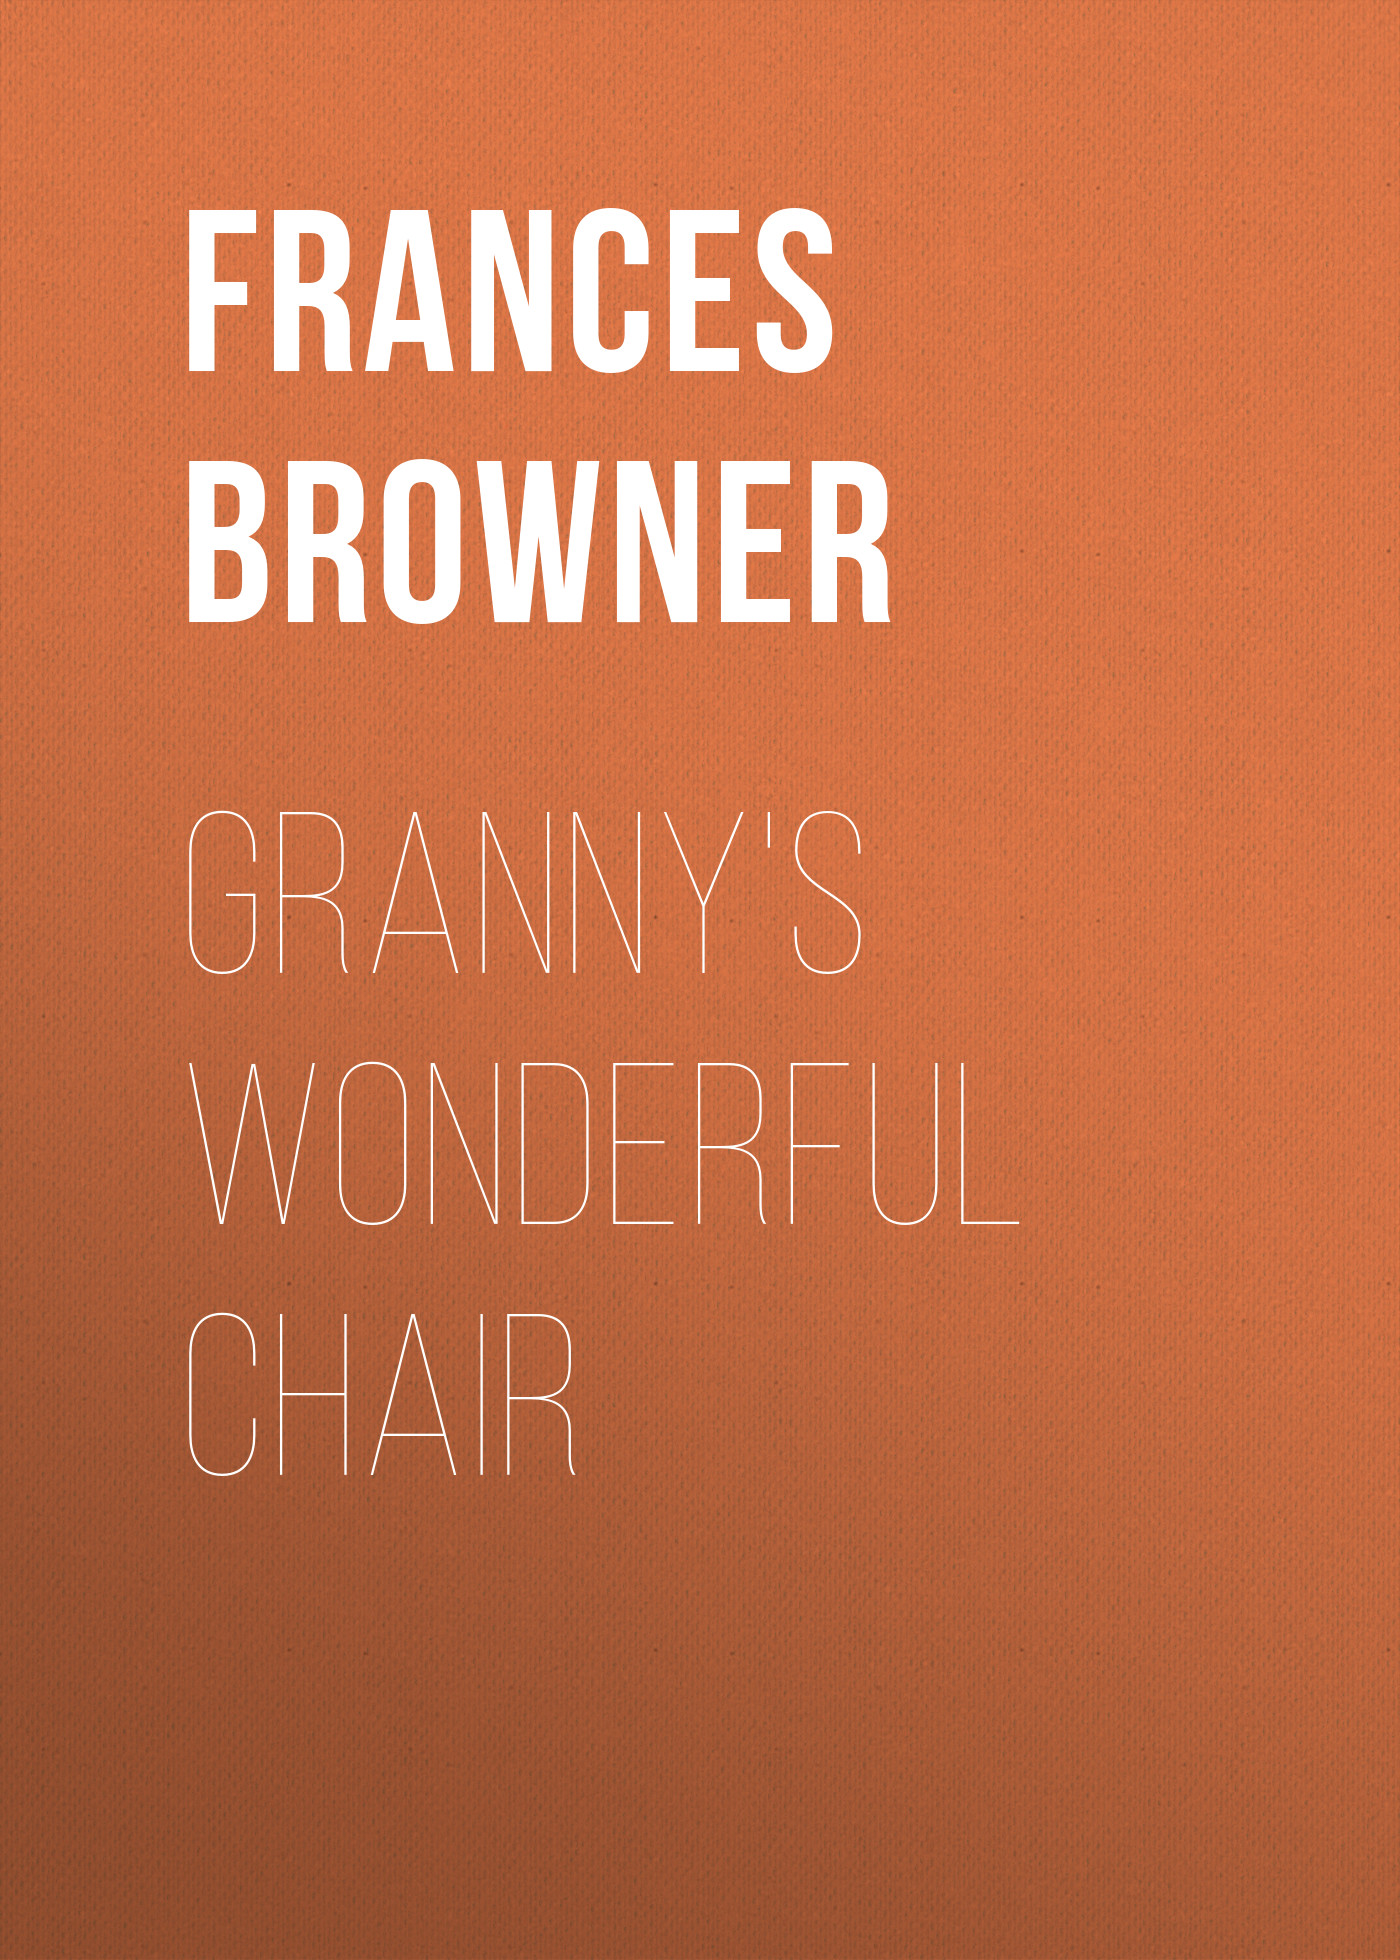 Frances Browner Granny's Wonderful Chair outdoor traveling camping tripod folding stool chair foldable fishing chairs portable fishing mate fold metal chair